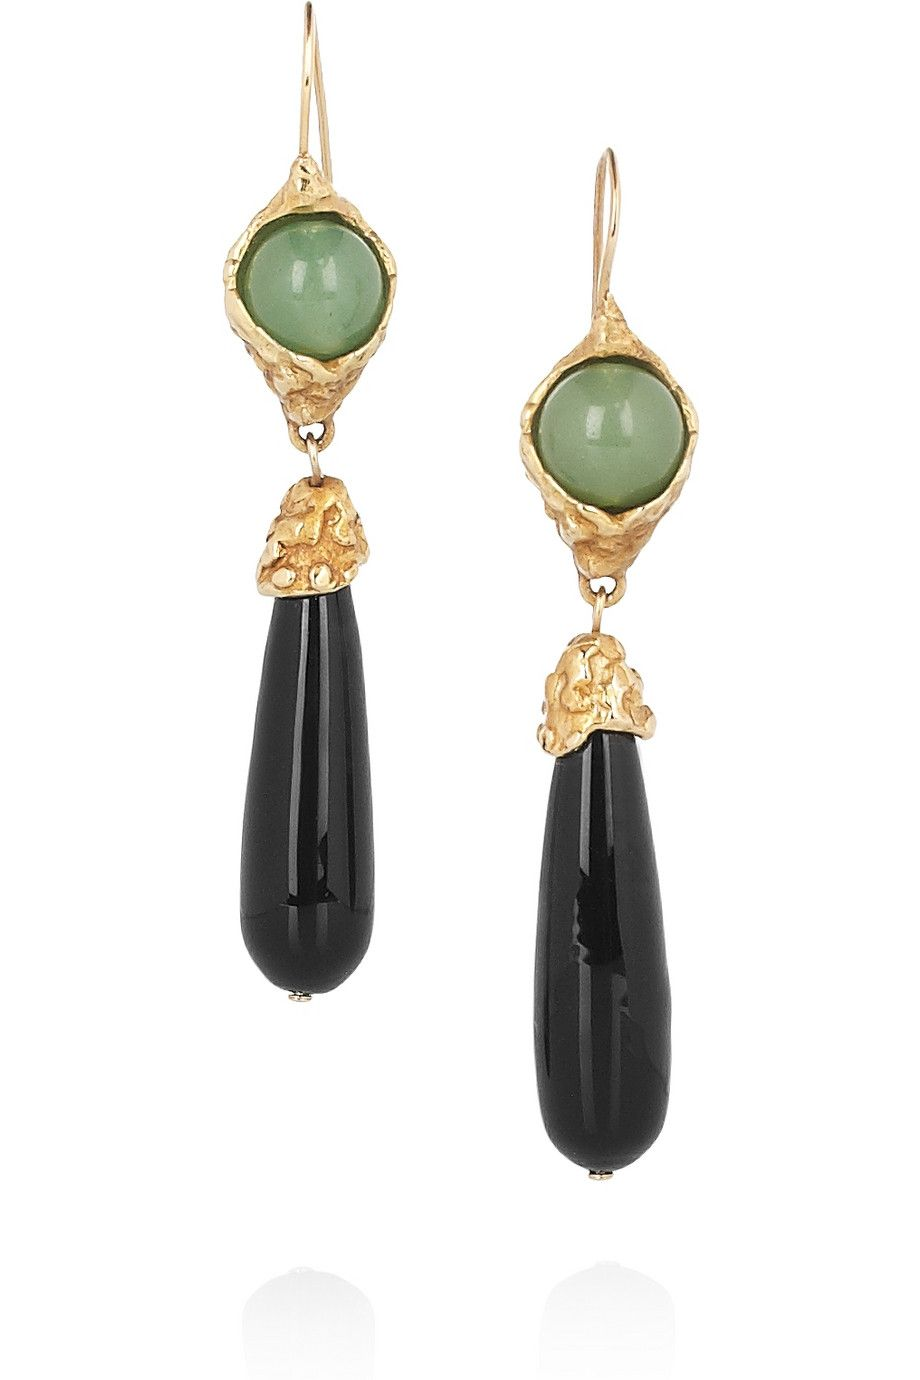 Yves saint laurent bijouterie and jewelries pinterest yves